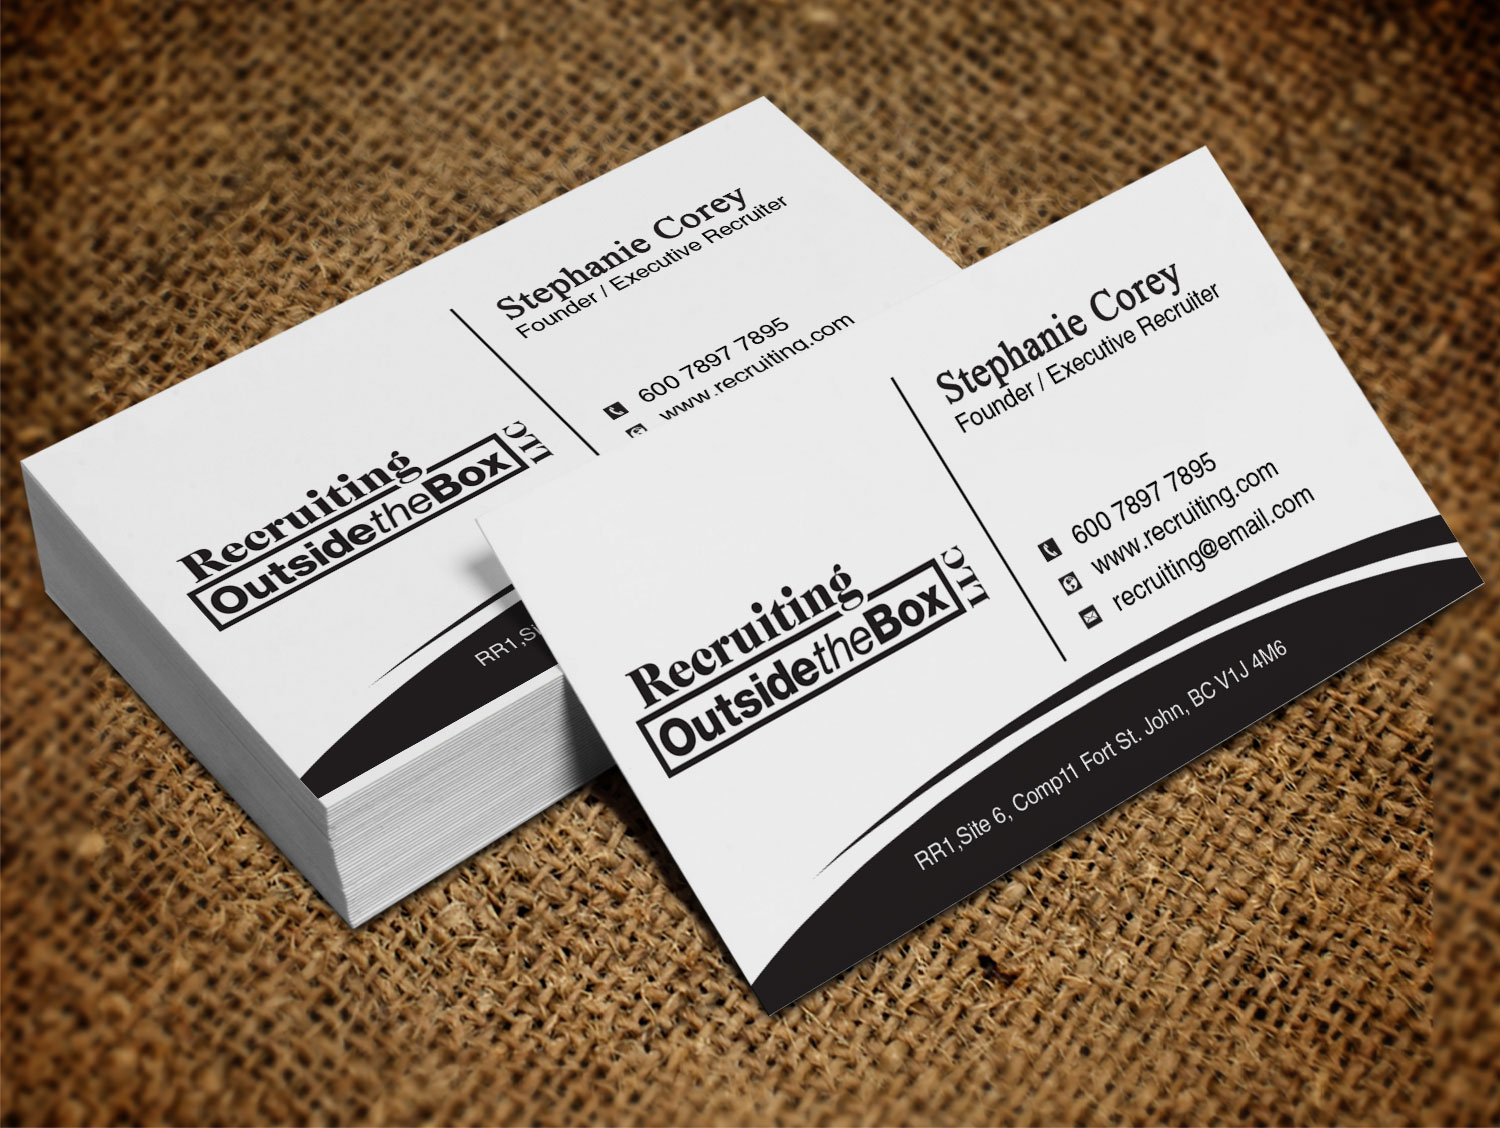 Business card design for recruiting outside the box llc by lanka business card design by lanka ama for boutique recruiting firm needs eye catching business cards magicingreecefo Gallery